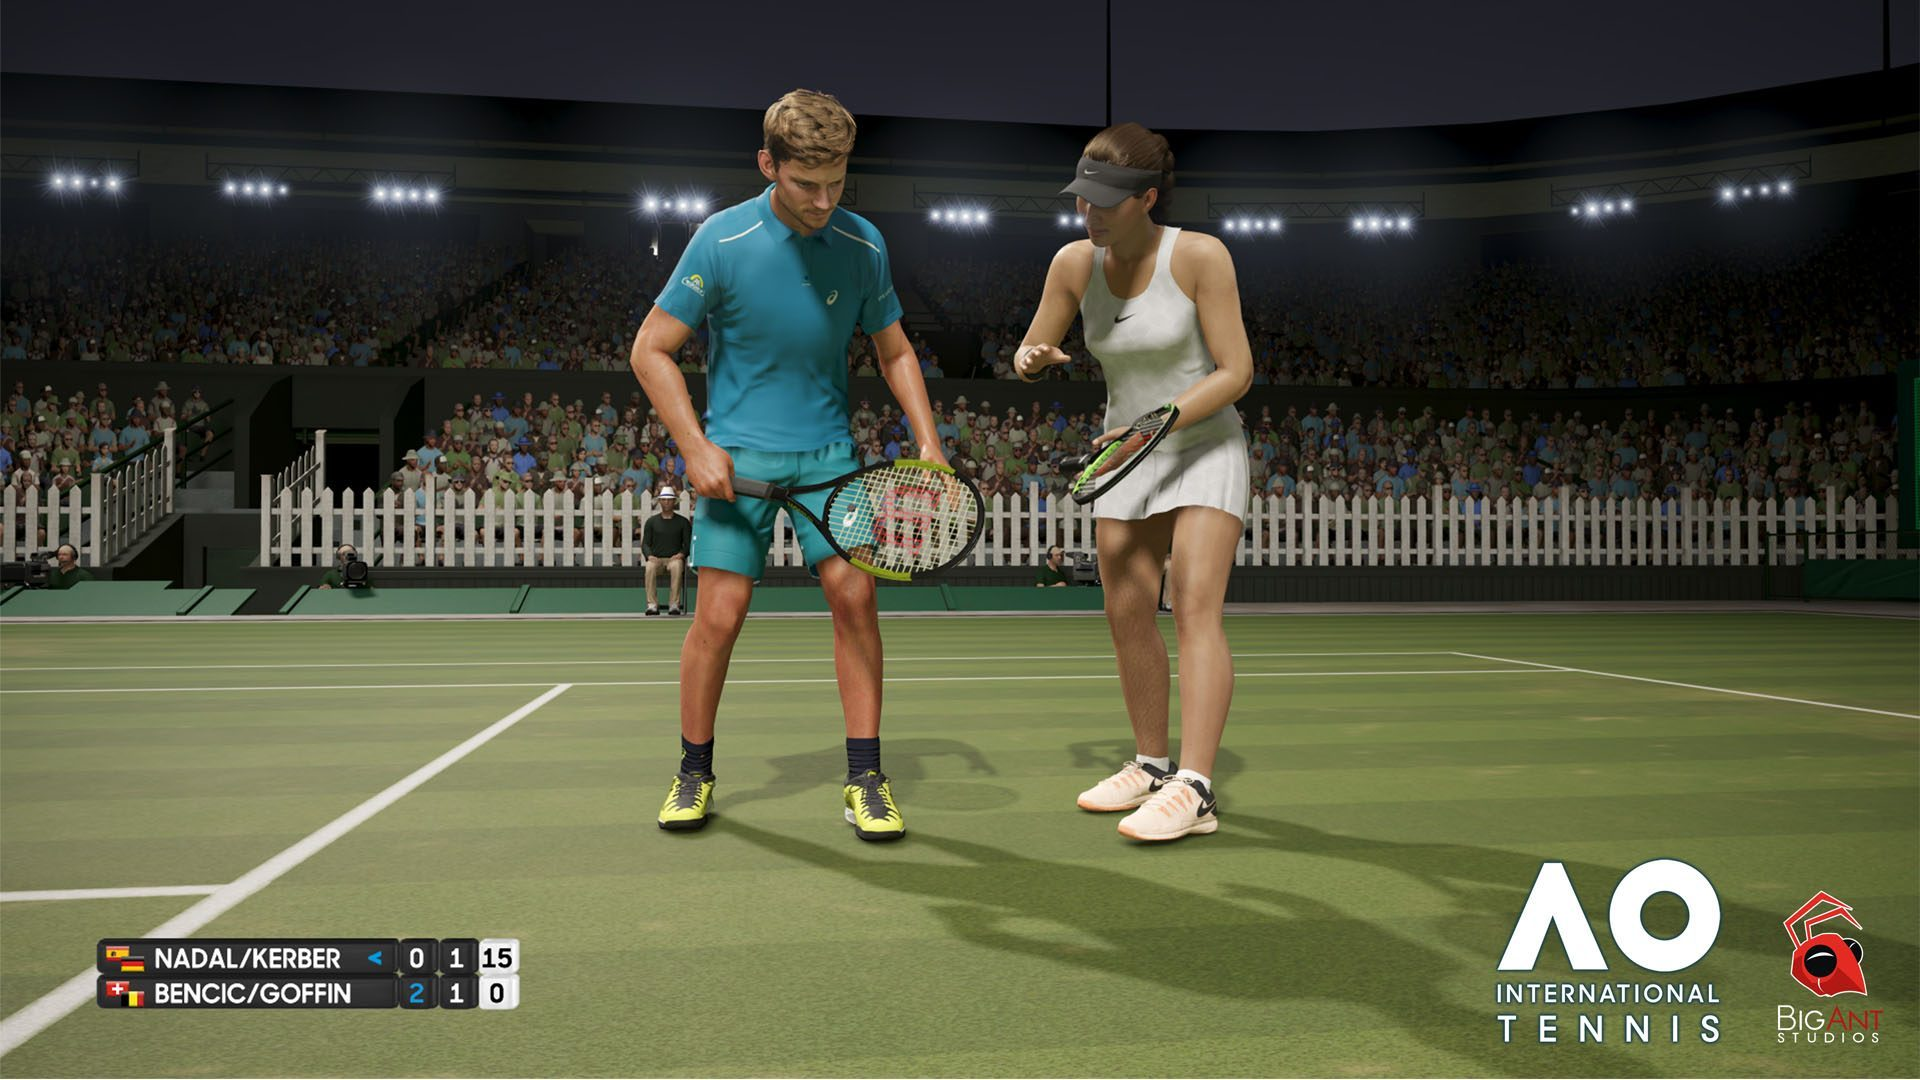 AO International Tennis_ScreenShot1